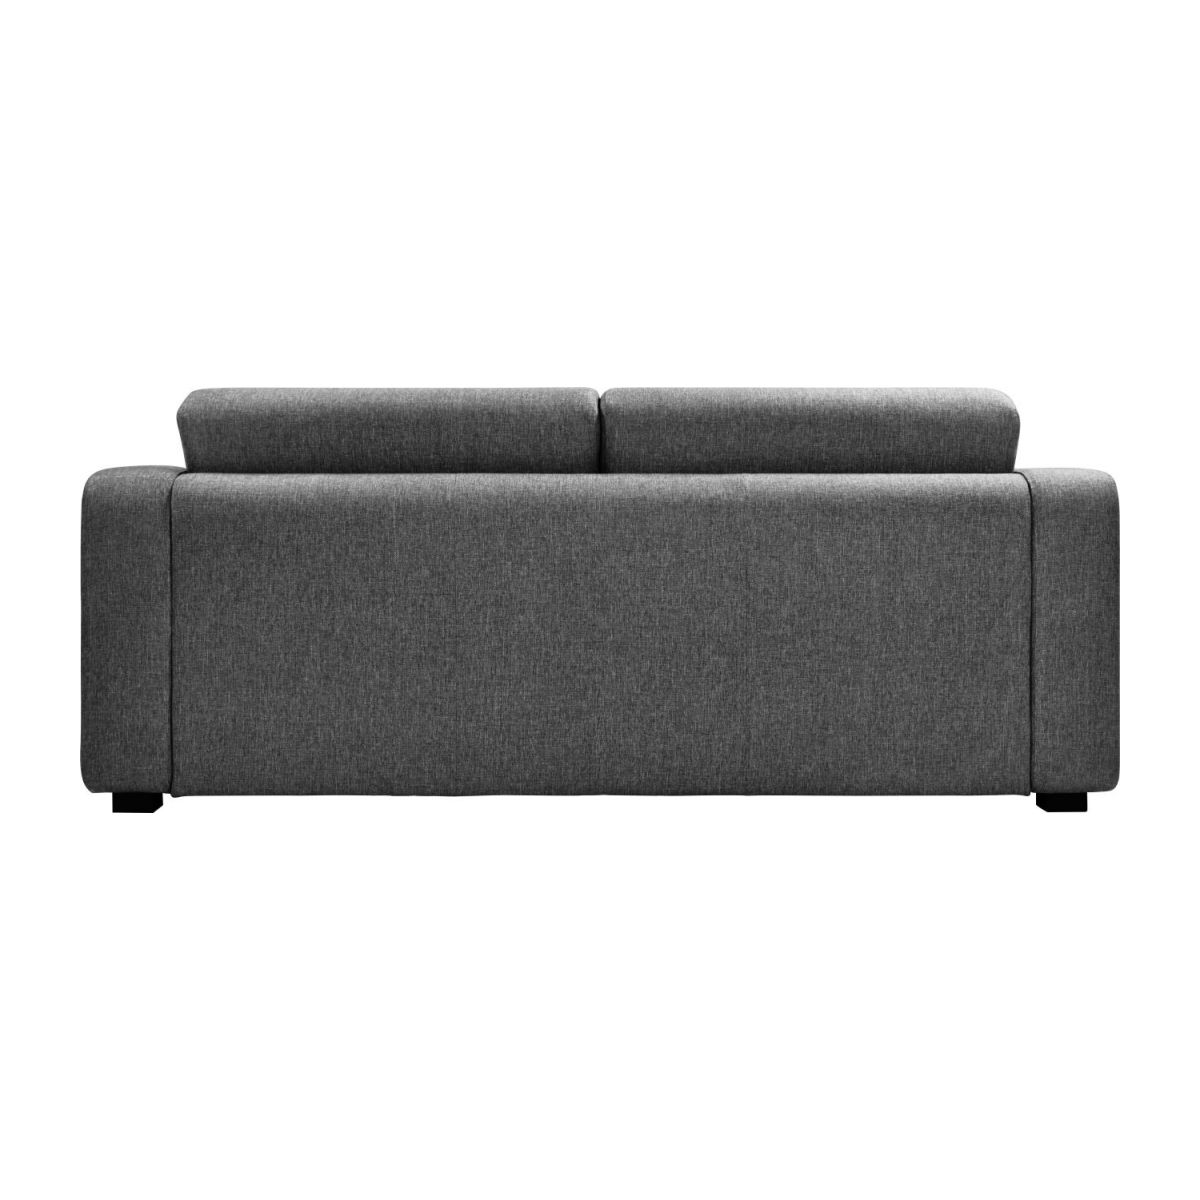 3-seater fabric sofa n°5